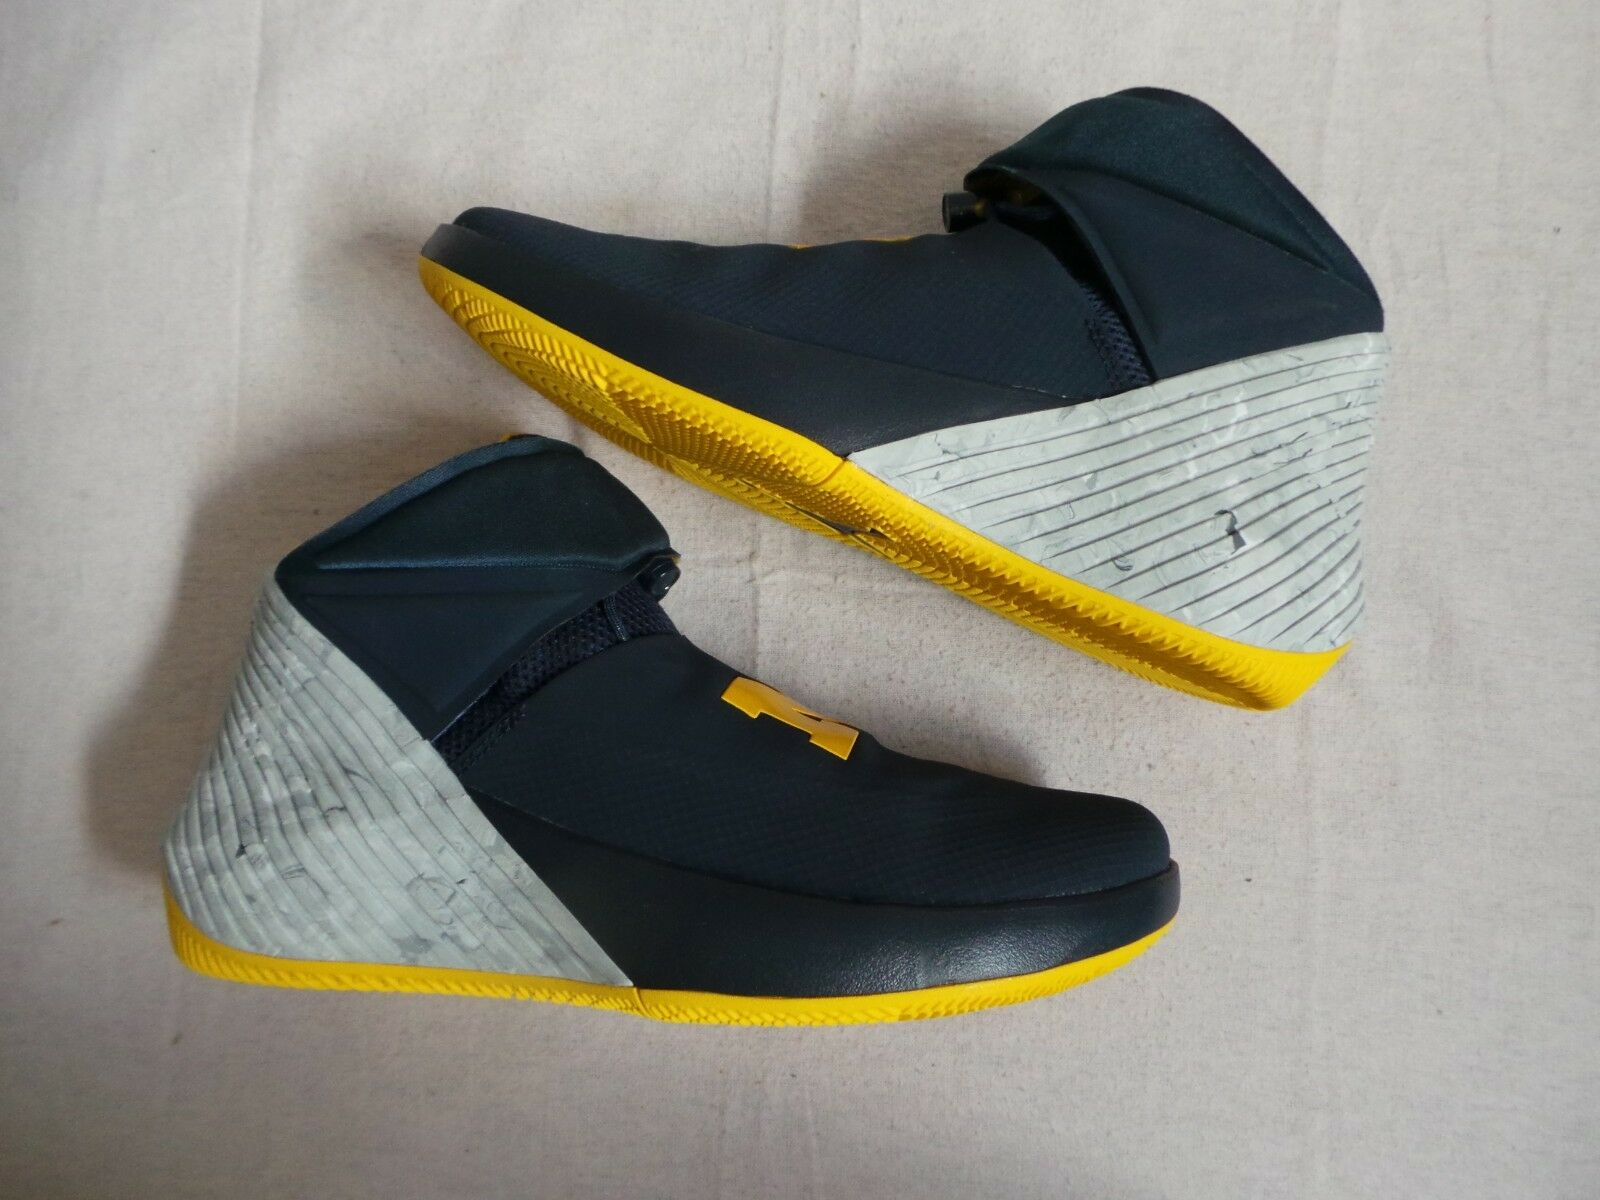 Nike Jordan Why Wolverines no Russell Westbrook Air zer0.1 Michigan Wolverines Why Um DS bf92c4